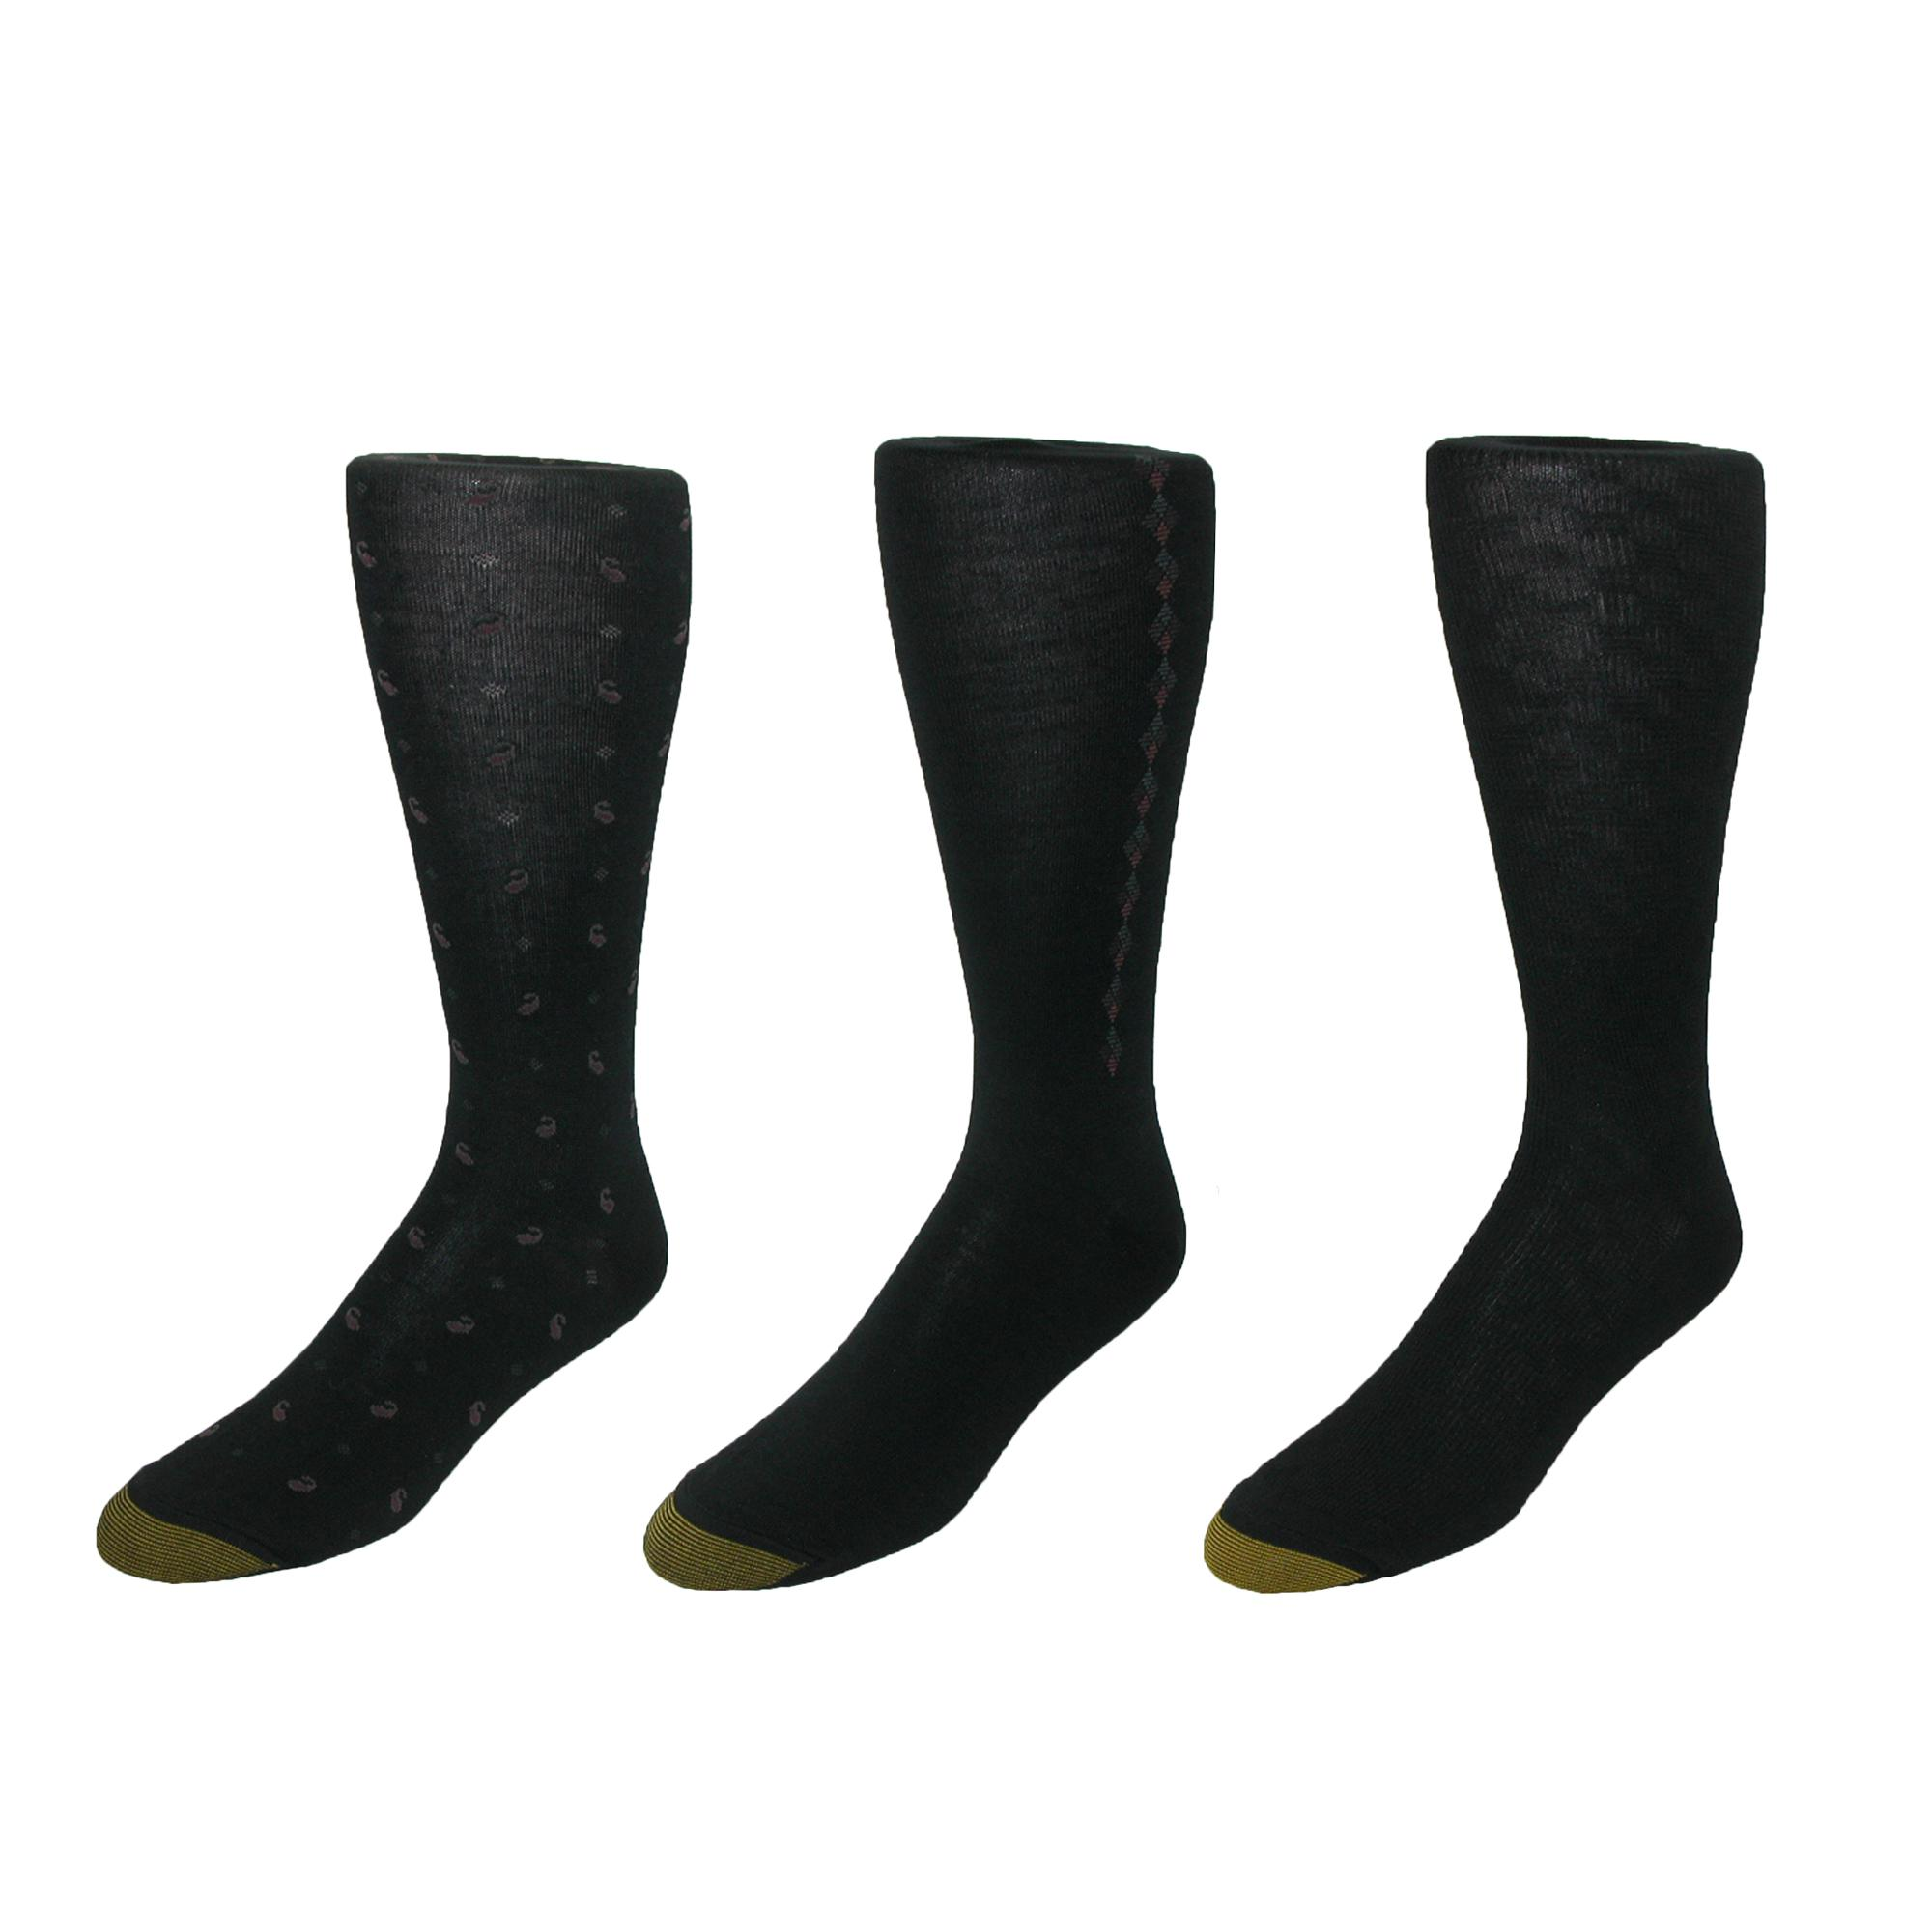 Gold_Toe_Men's_Over_the_Calf_Dress_Sock_(Pack_of_3)_-_Black_one_size